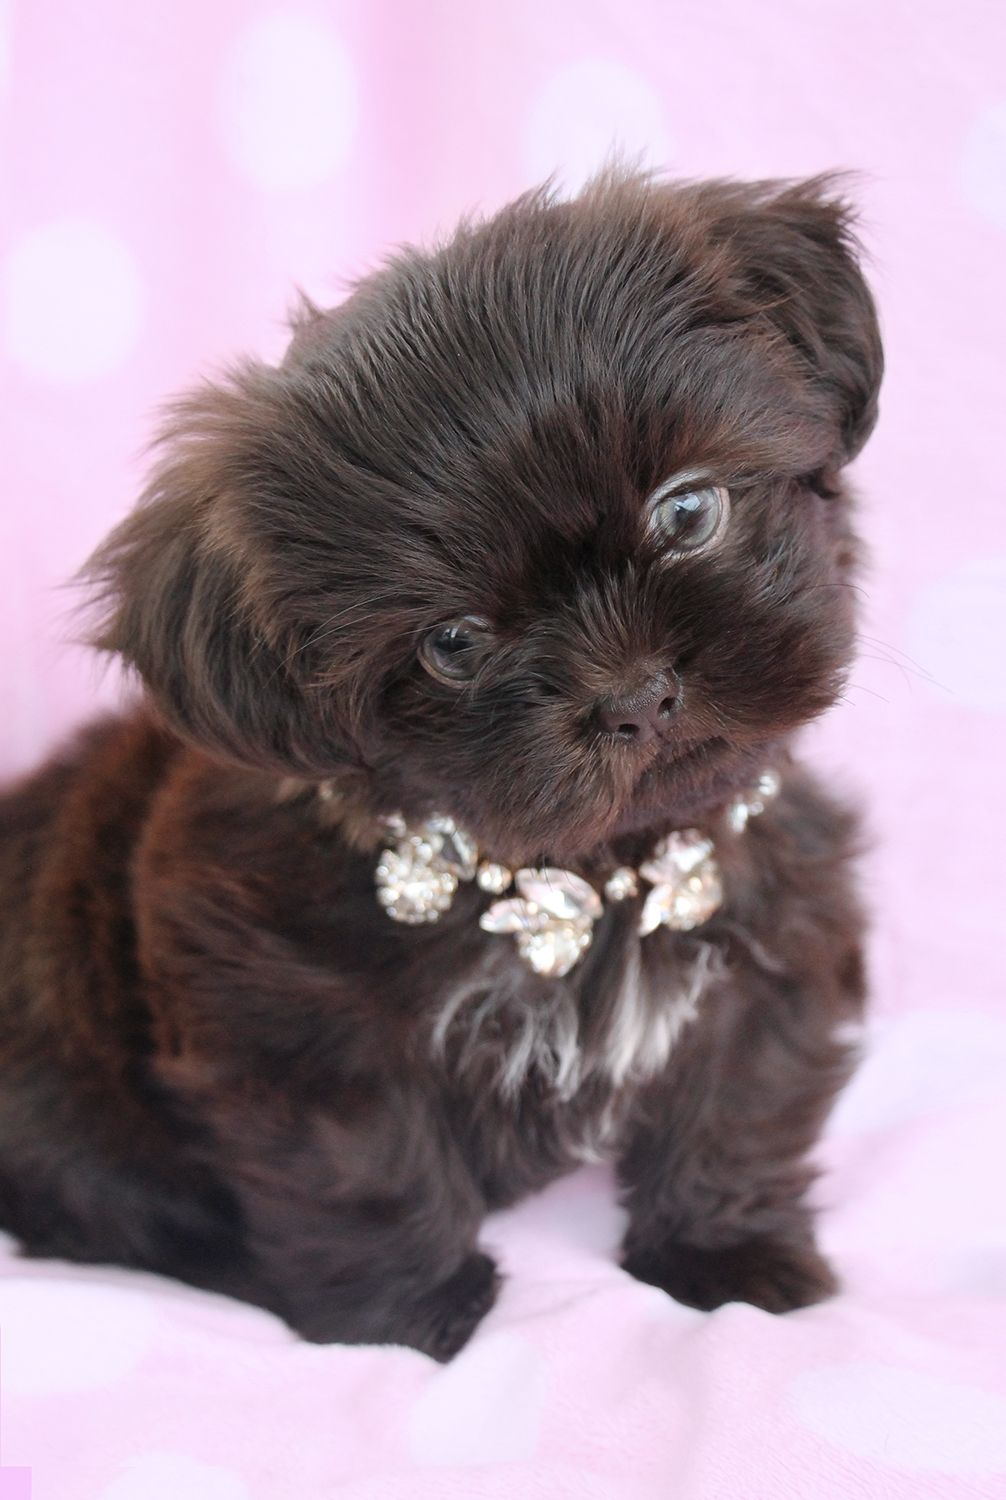 Imperial Shih Tzu Puppies For Sale at TeaCups Puppies in